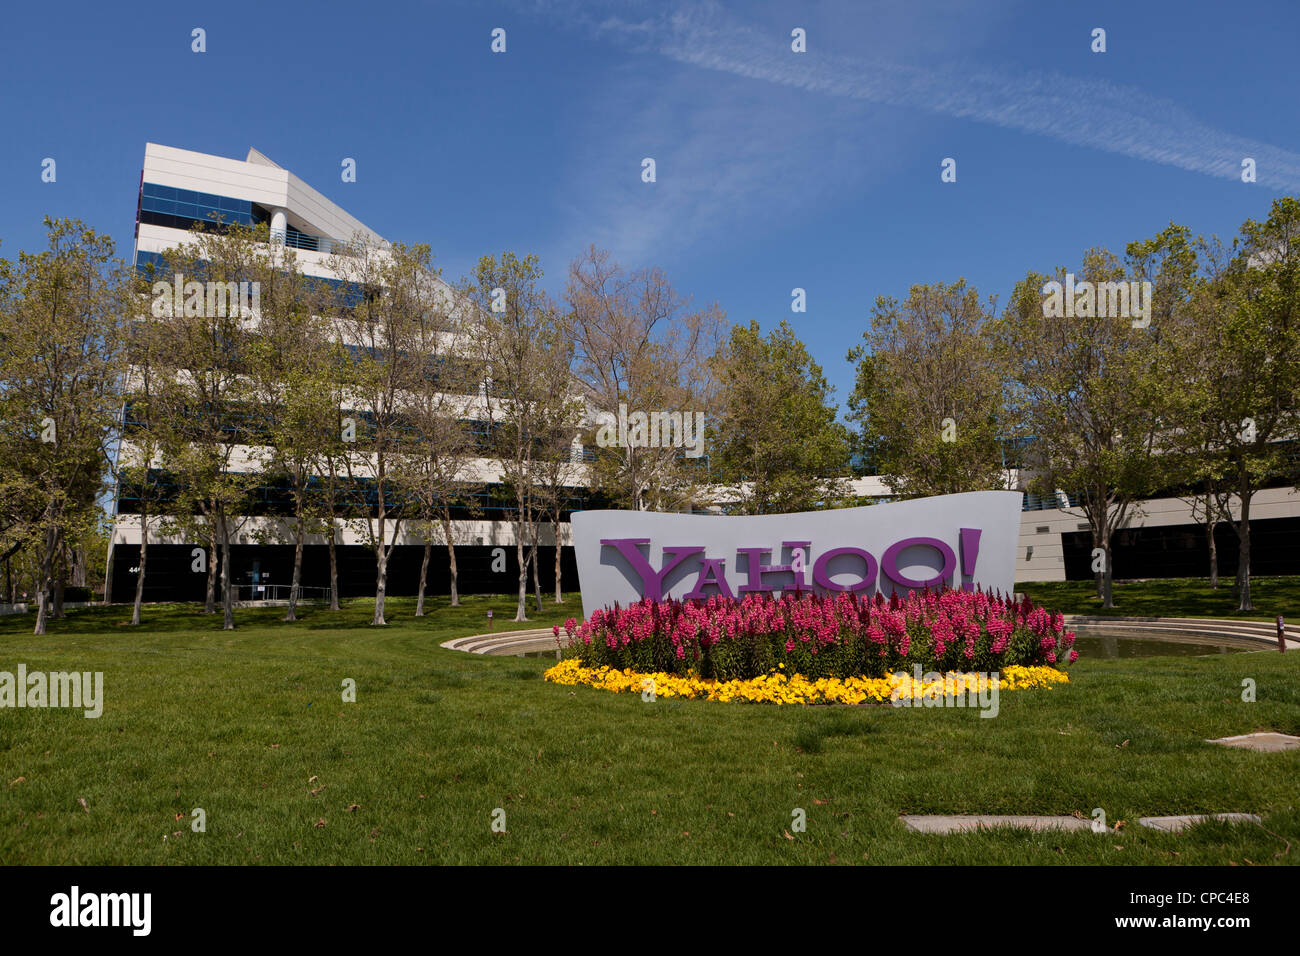 Sedia A Rotelle Yahoo Yahoo Building Immagini Yahoo Building Fotos Stock Alamy